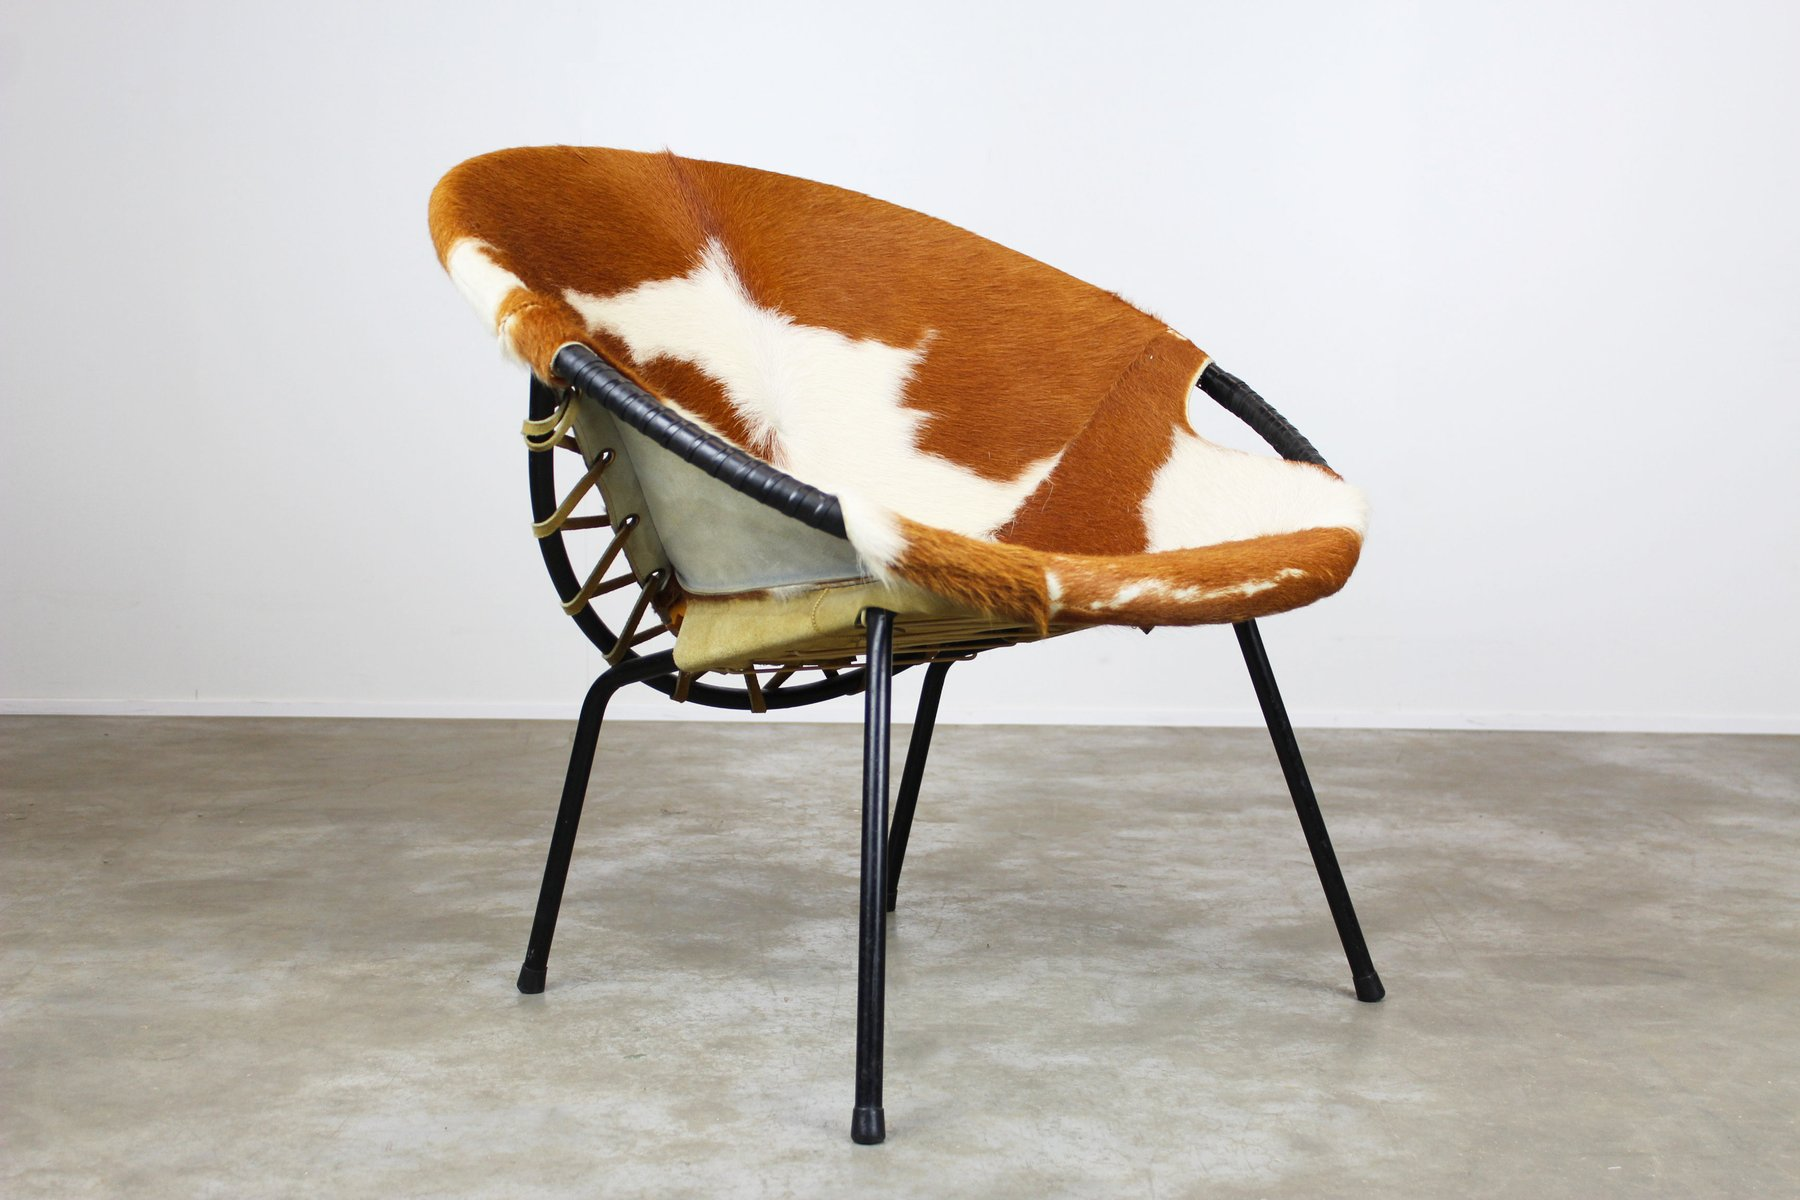 Exceptional Cowhide Balloon Chair By Hans Olsen, 1950s